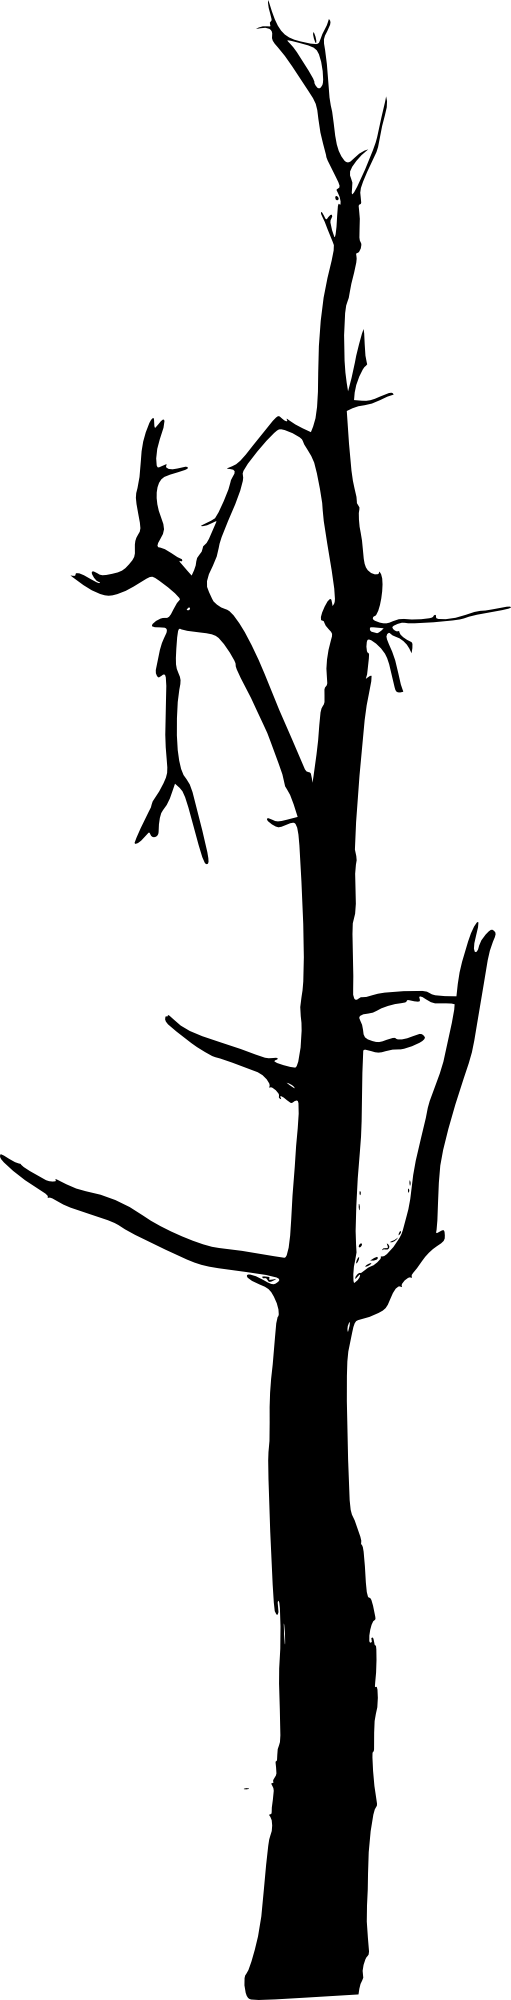 Tree swing clipart png transparent Bare Tree Drawing at GetDrawings.com | Free for personal use Bare ... png transparent